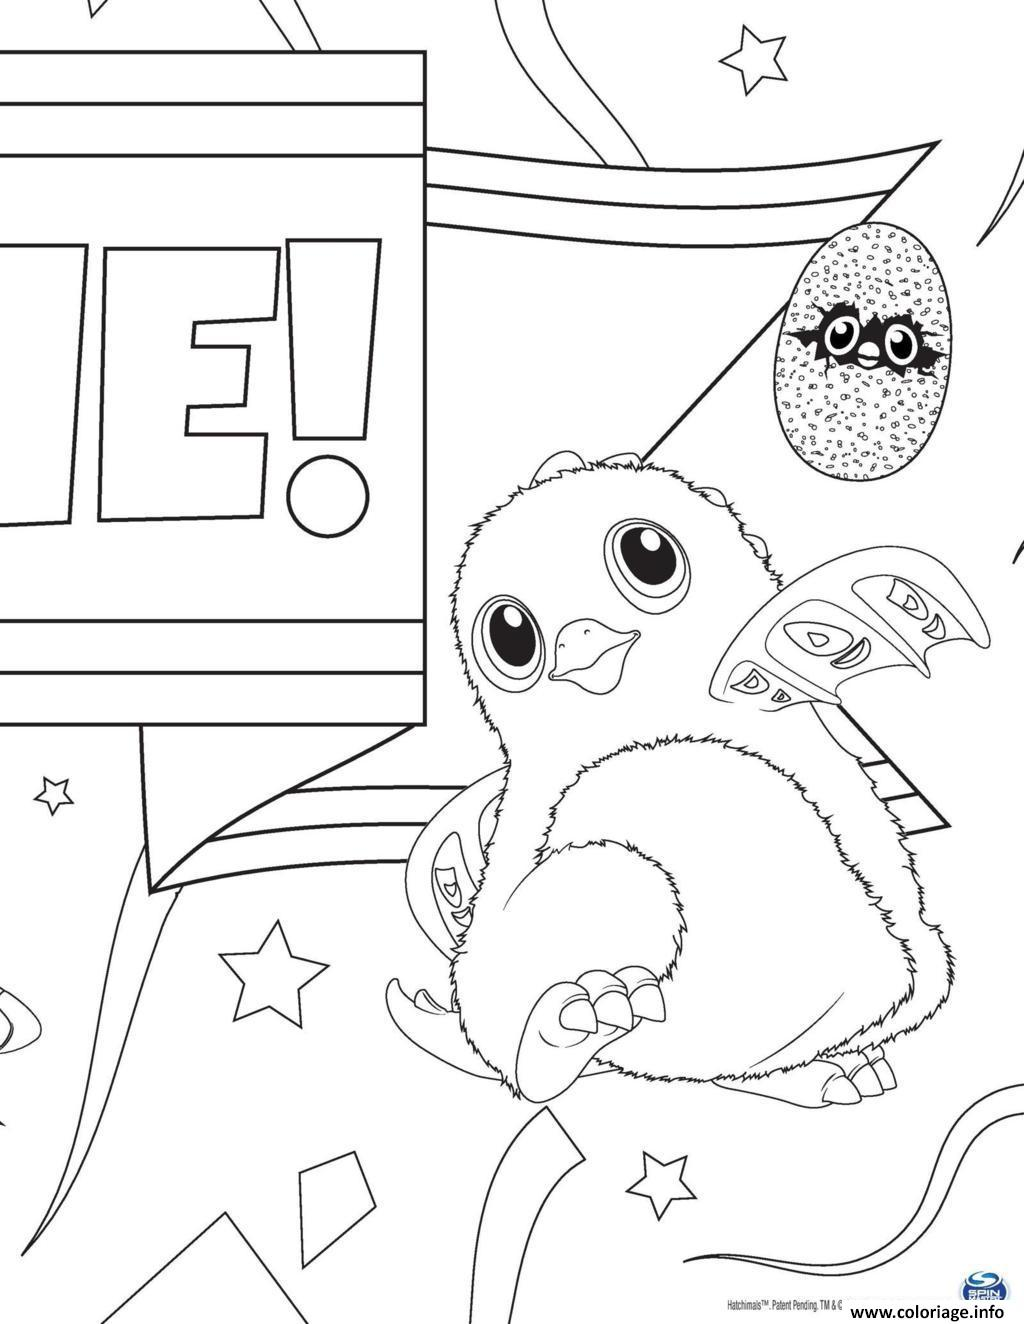 Coloriage Hatchy Hatchimals Francais Dessin